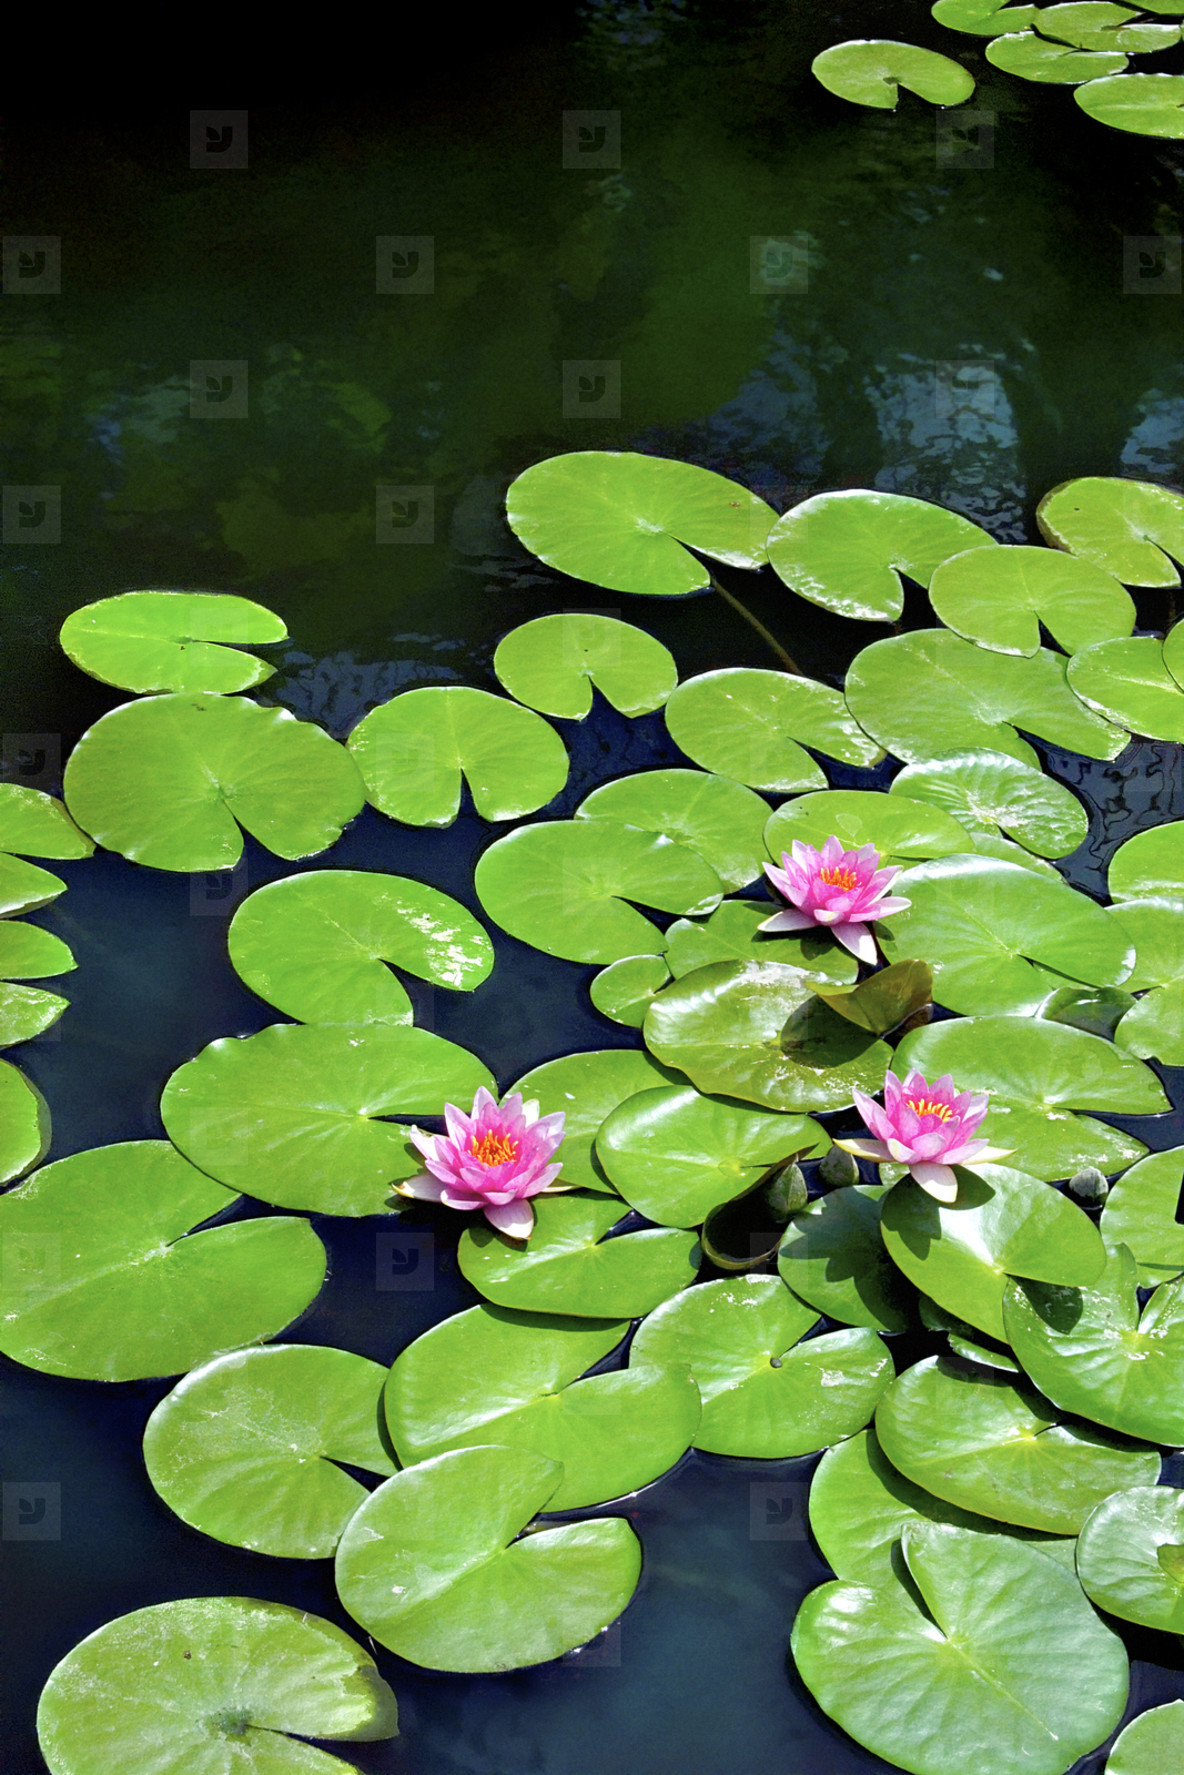 Flowering lily pads on pond